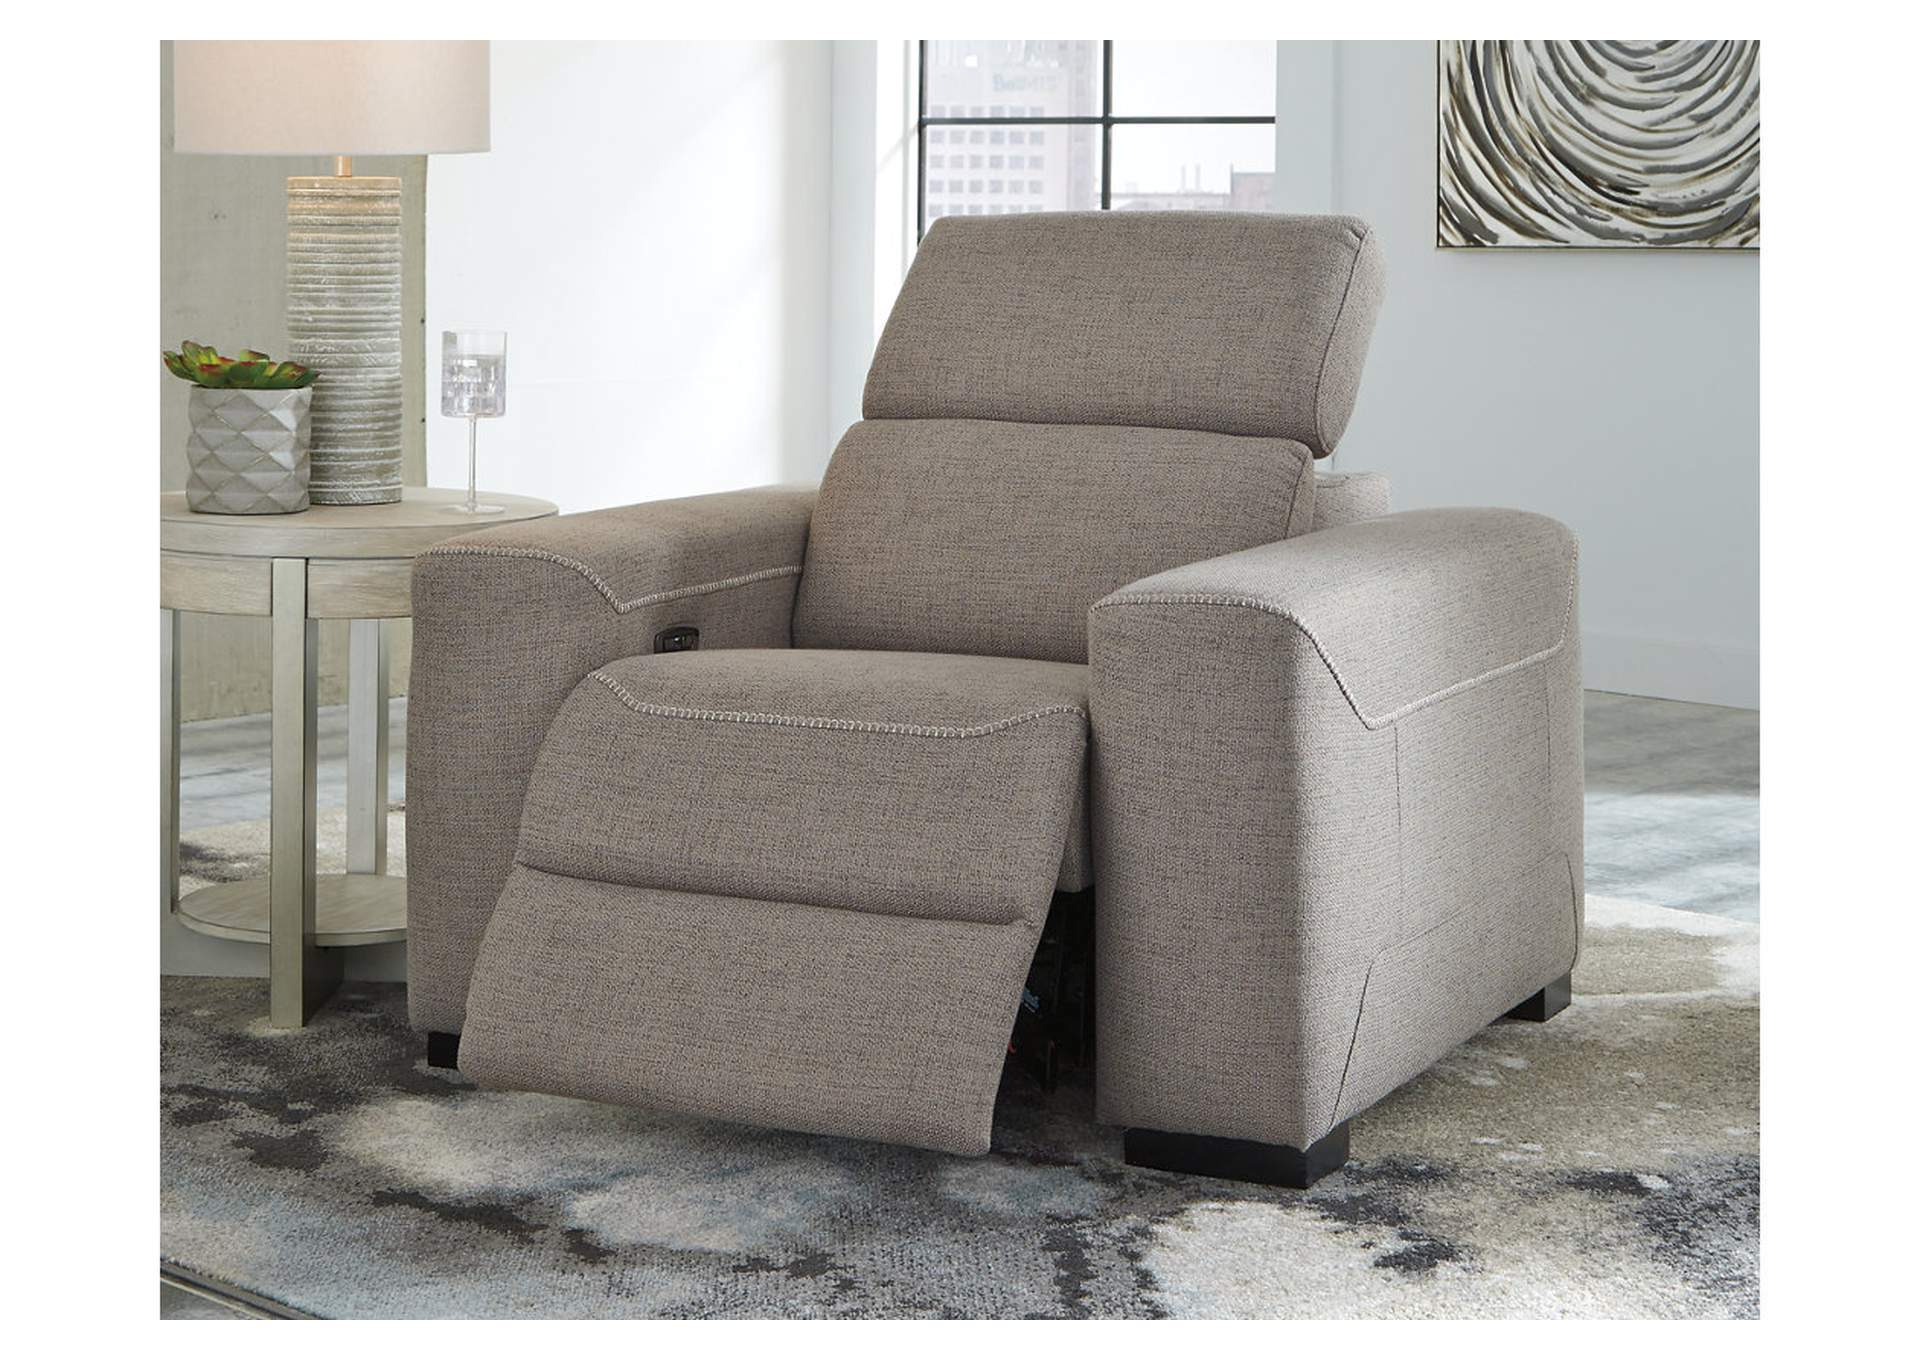 Mabton Gray Power Recliner,Signature Design By Ashley